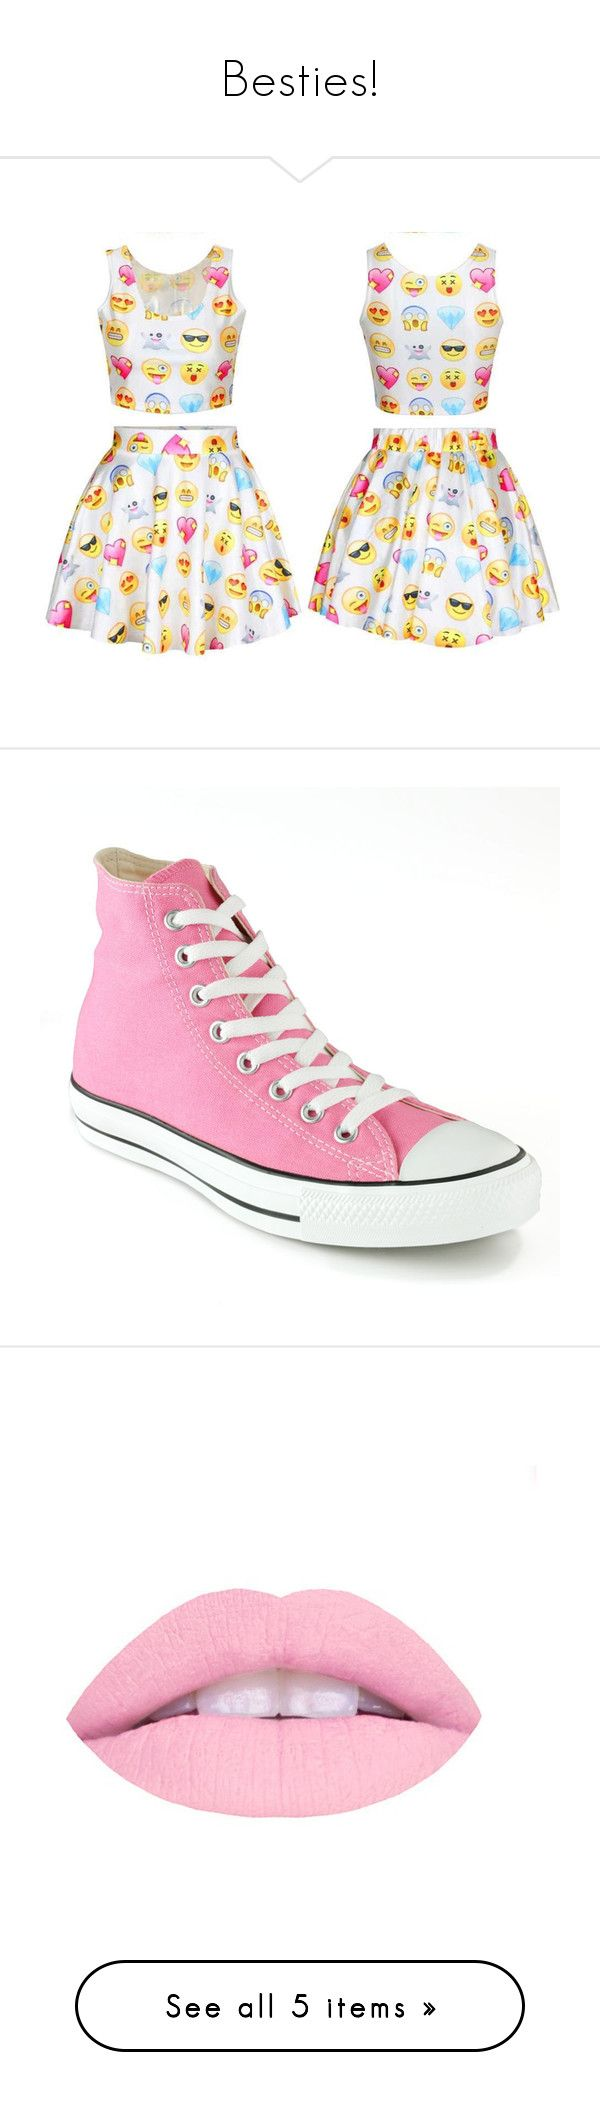 """""""Besties!"""" by janaeyoung on Polyvore featuring dresses, shoes, sneakers, pink, lace shoes, pink sneakers, pink high tops, converse high tops, lace up sneakers and beauty products"""